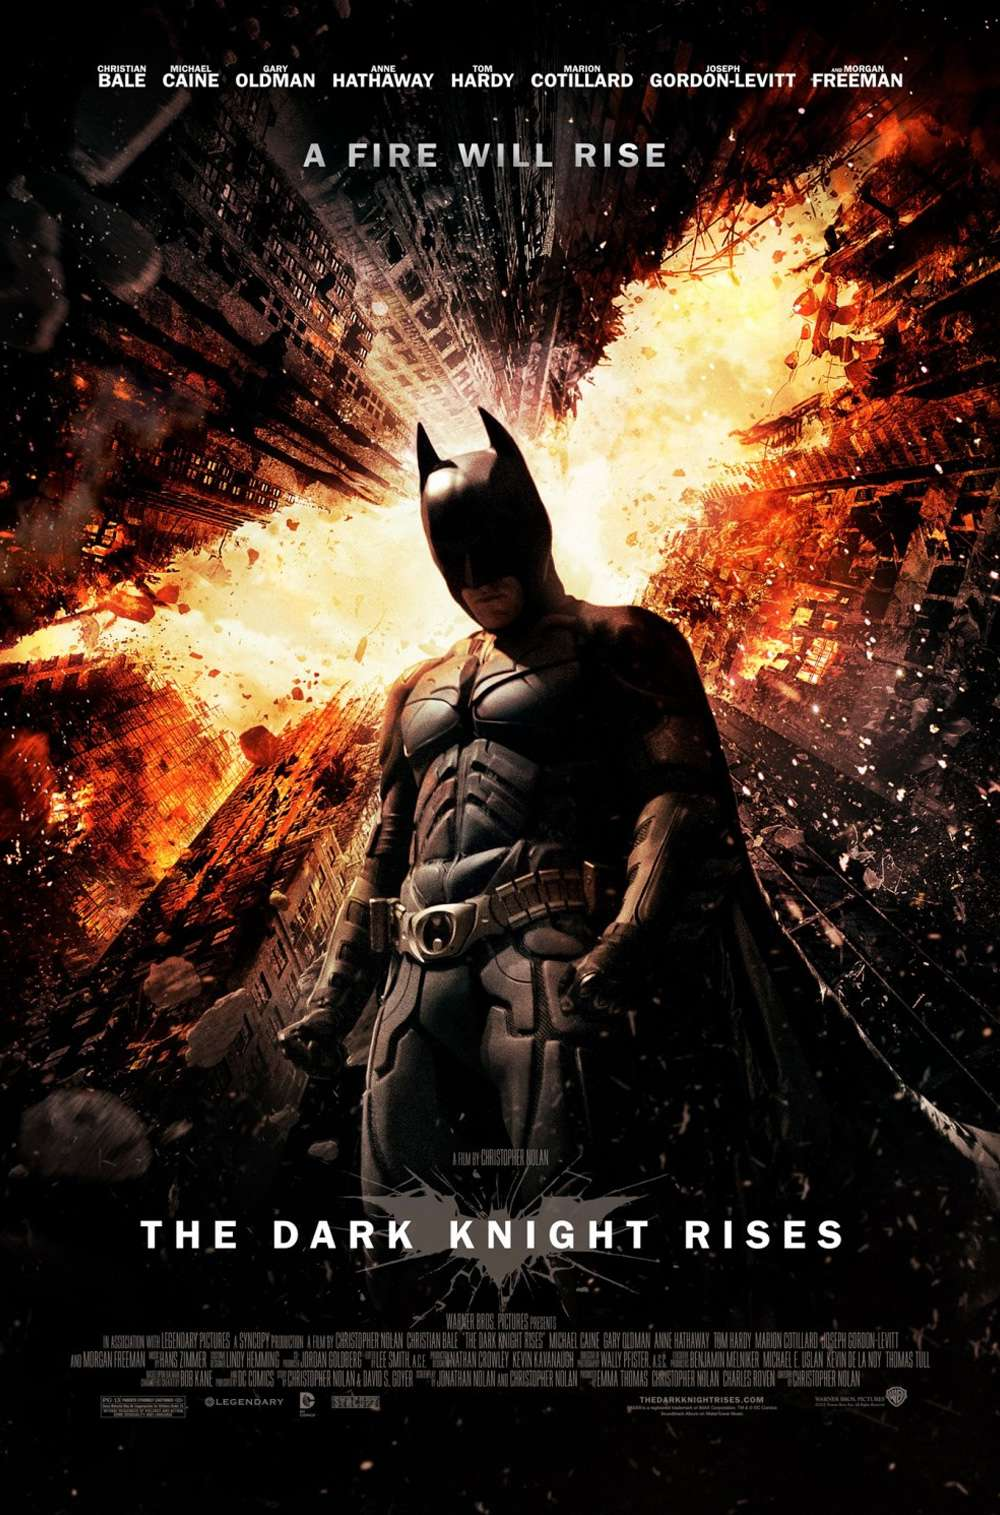 Poster for The Dark Knight Rises (2012)